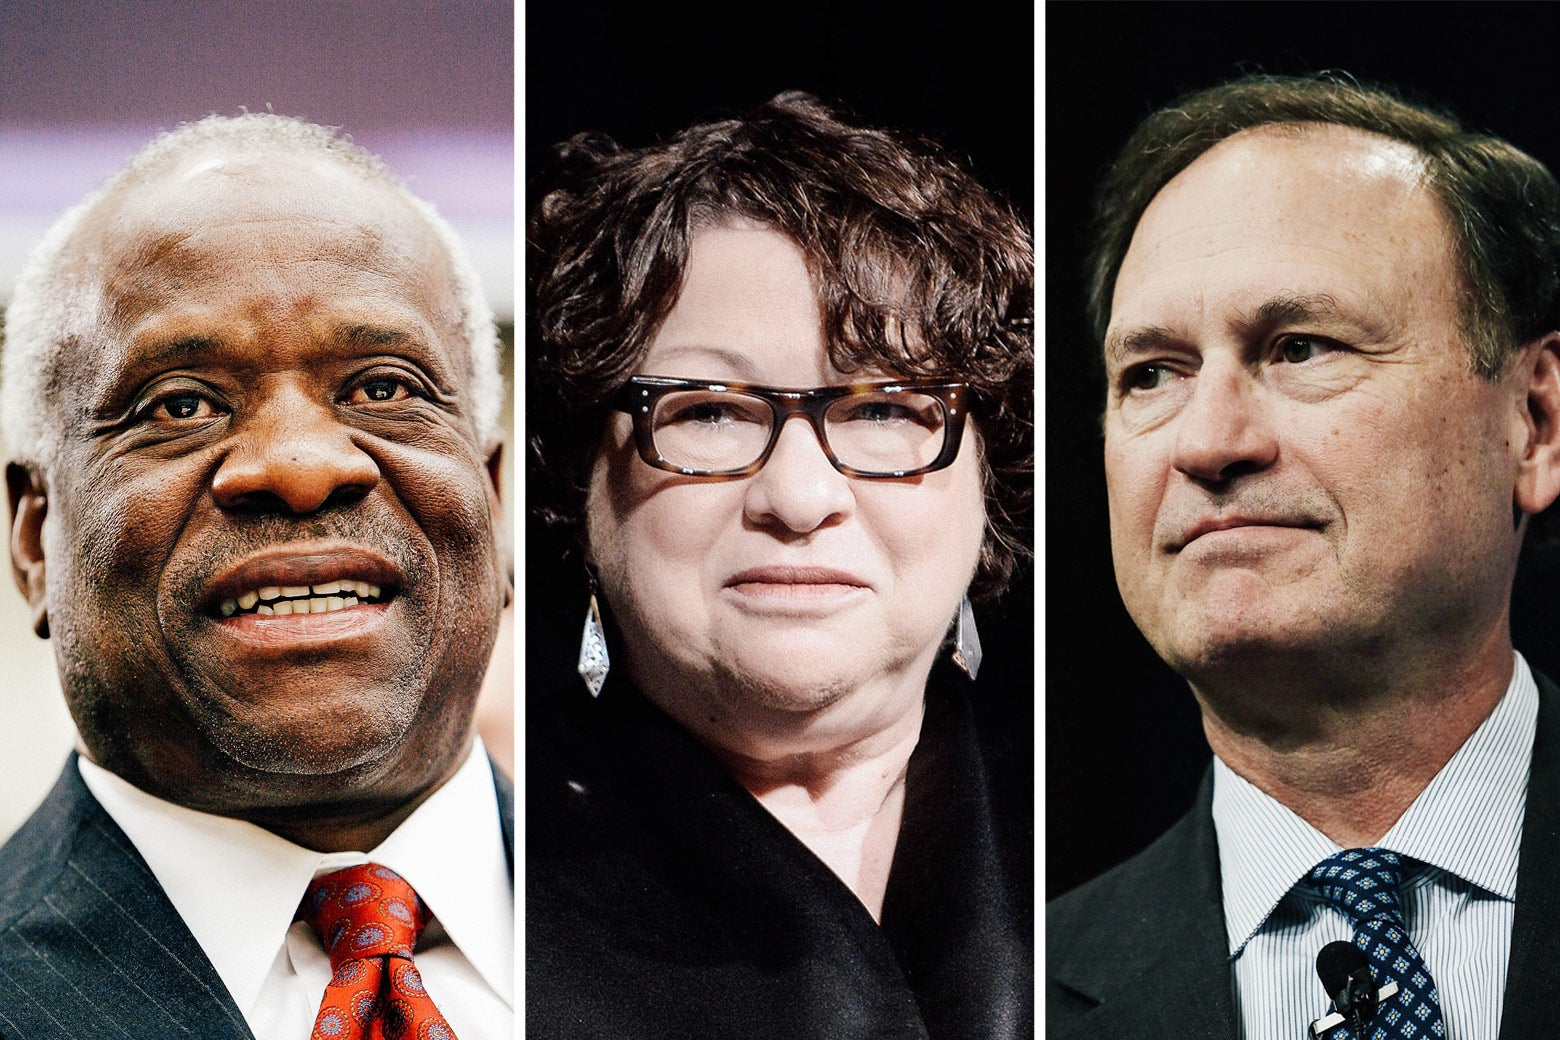 Supreme Court Justices Clarence Thomas, Sonia Sotomayor, and Samuel Alito.